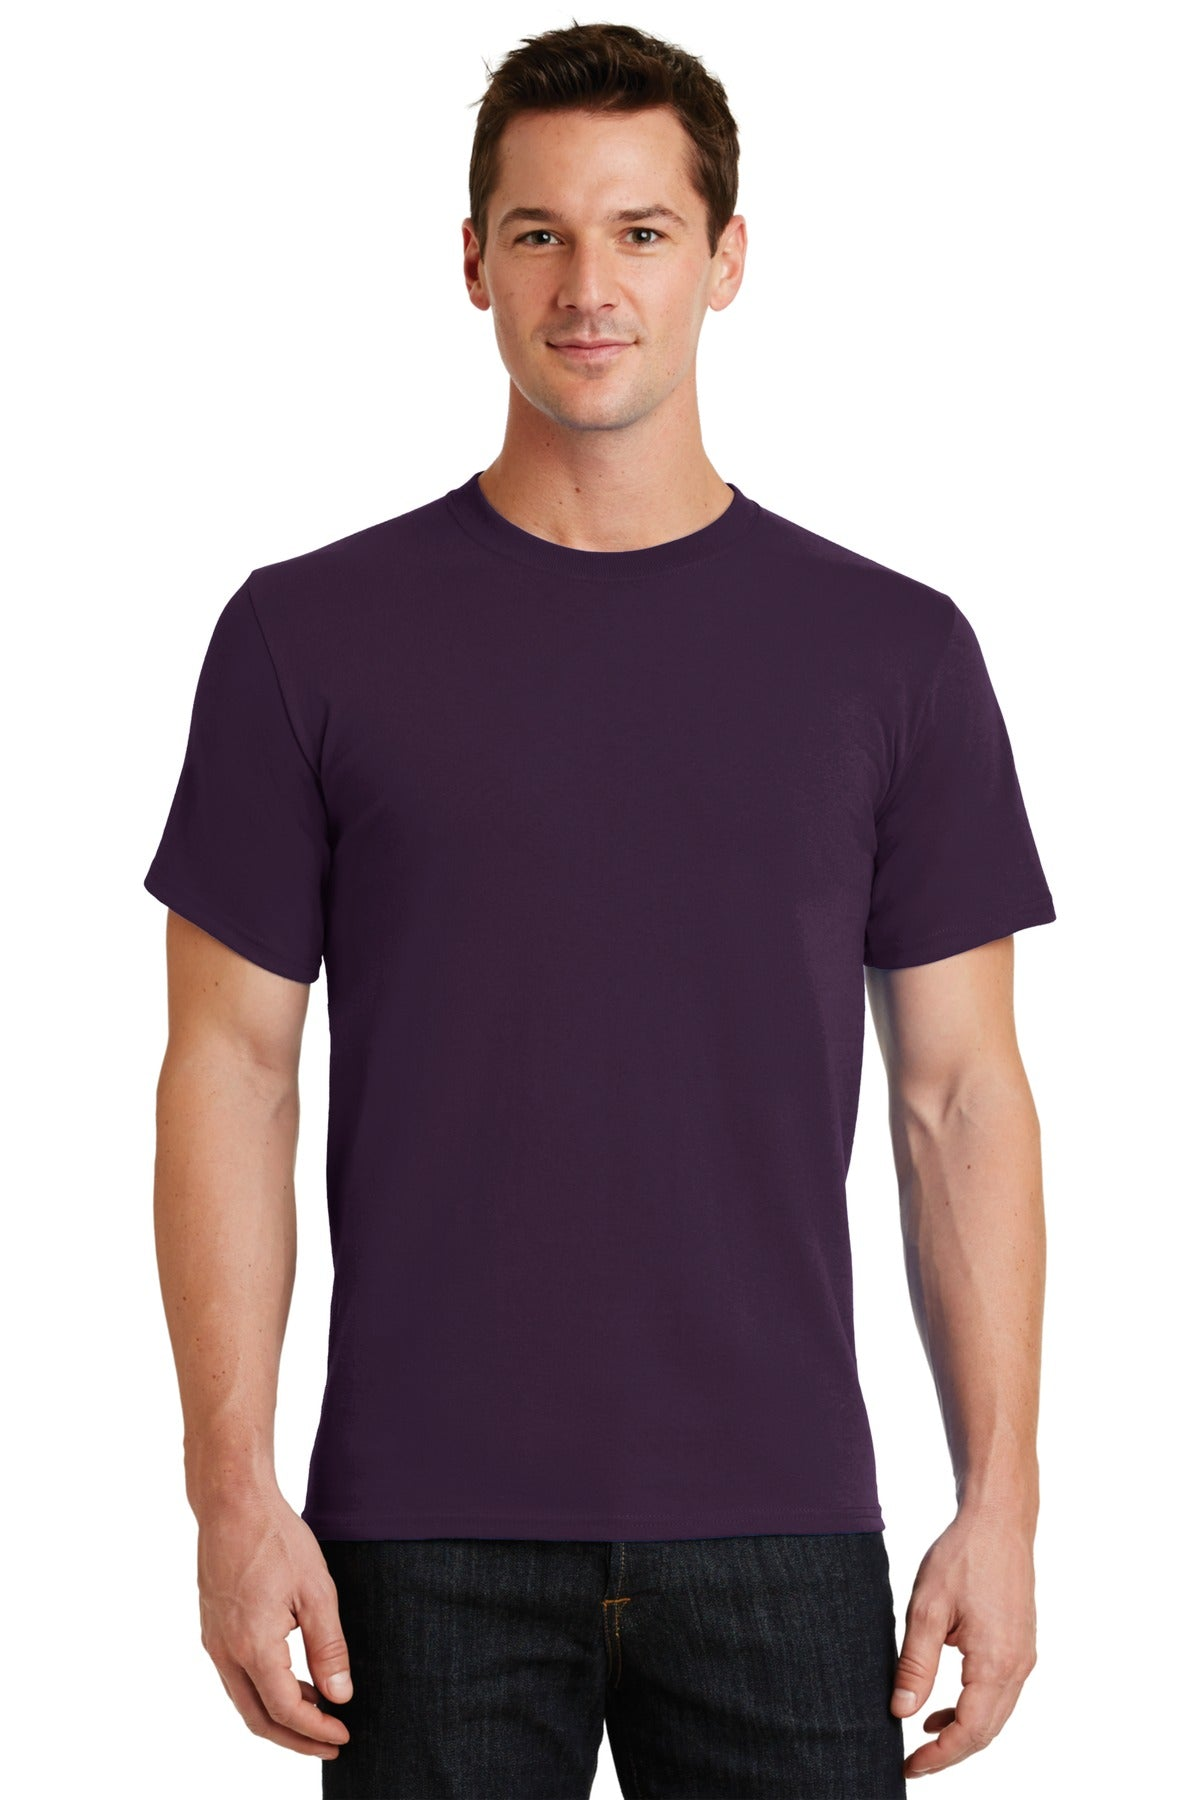 Eggplant Port & Company - Essential T-Shirt